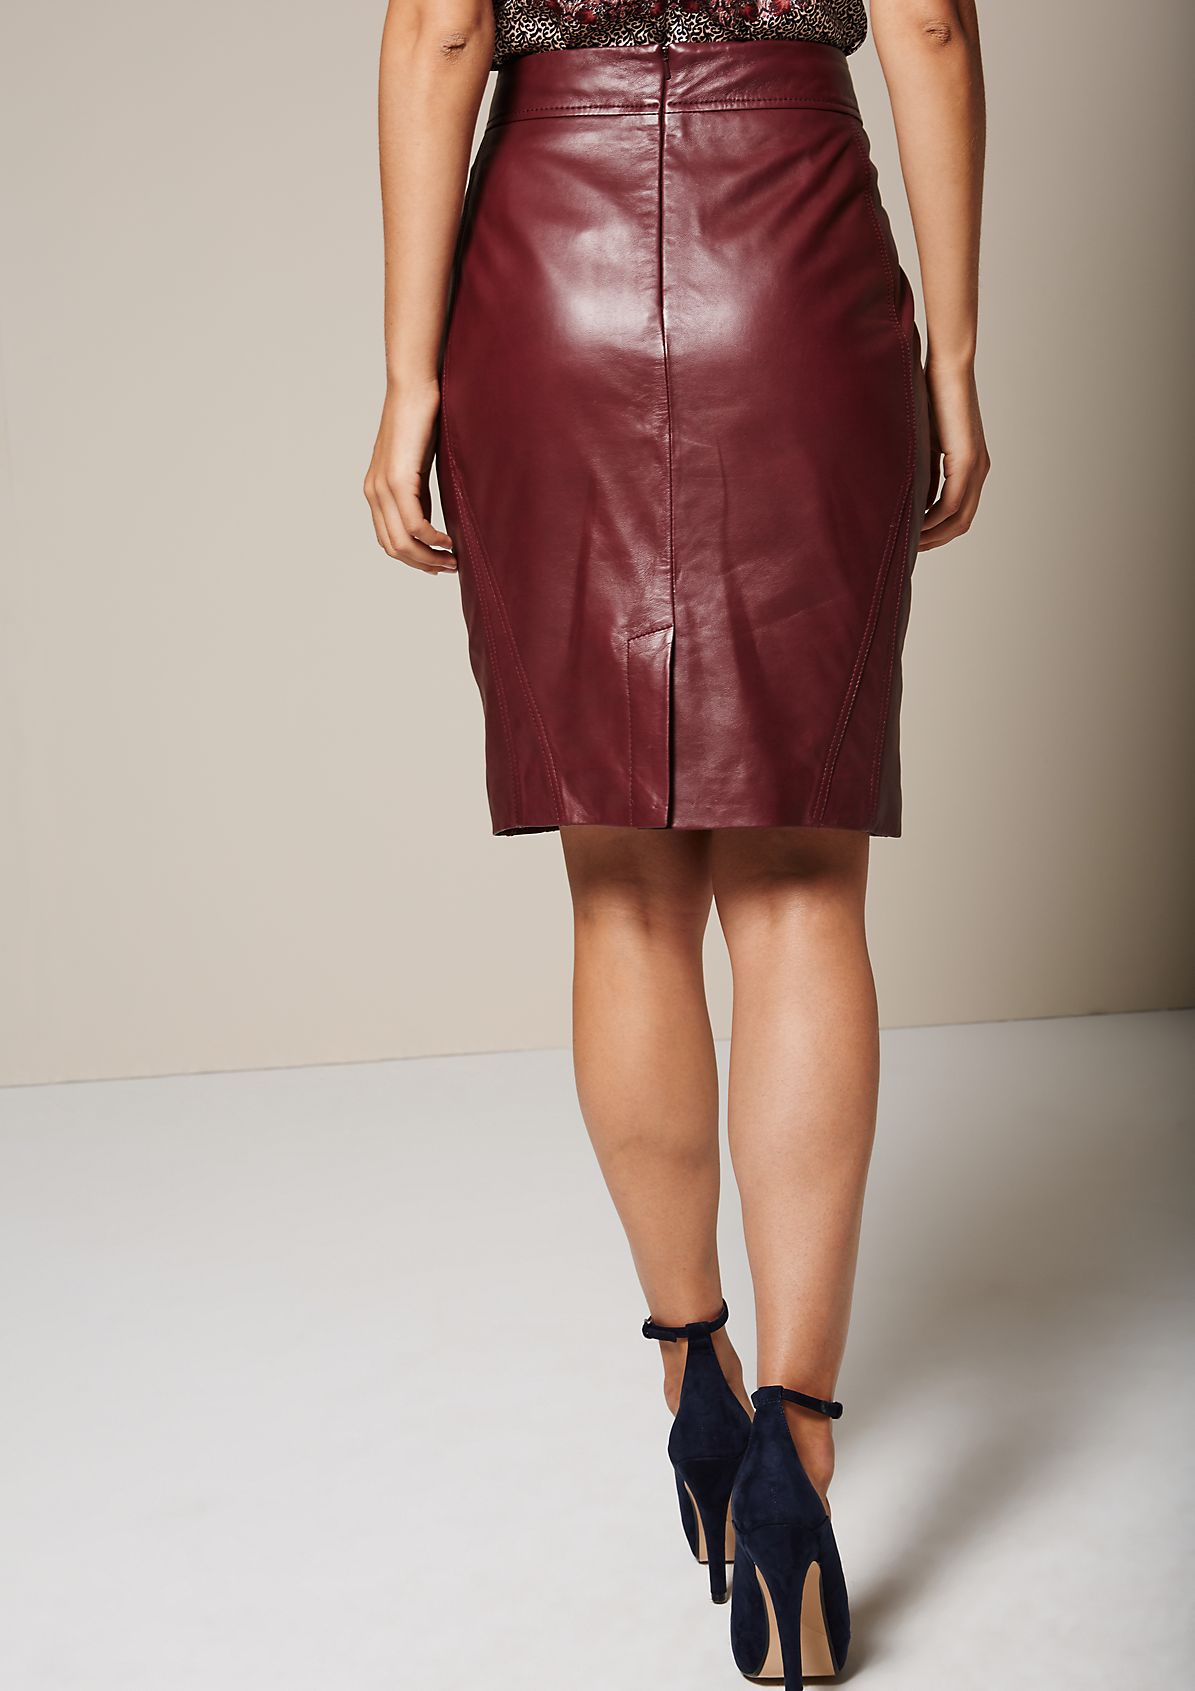 Sensational skirt in soft genuine leather from s.Oliver